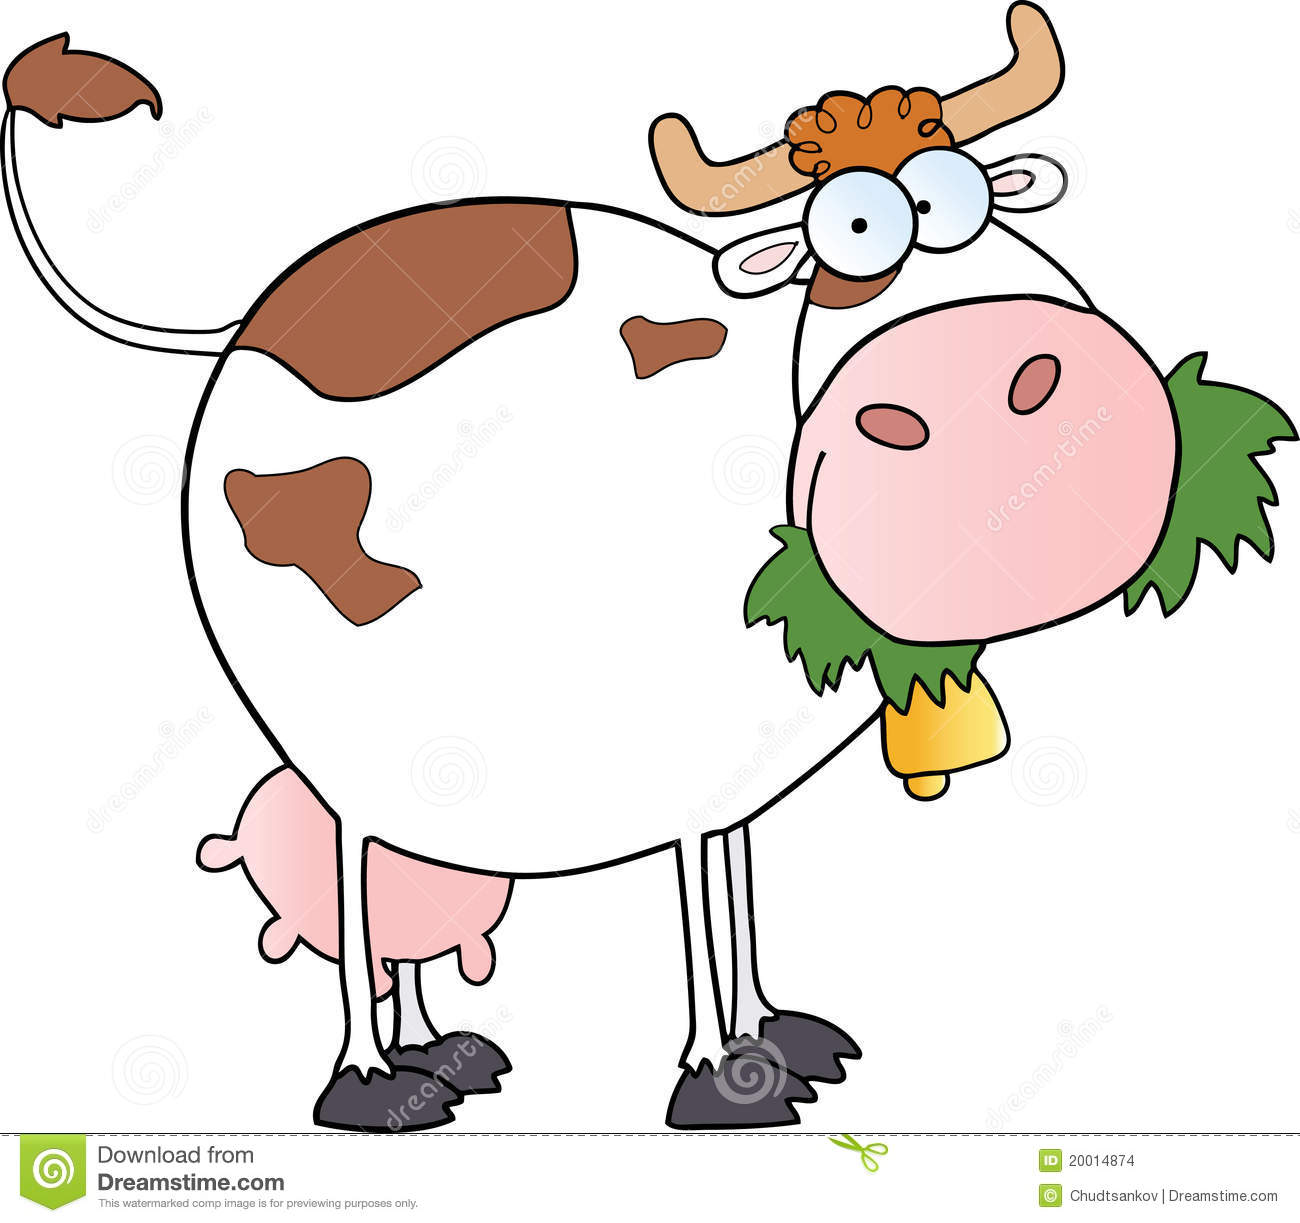 Vache laiti re de dessin anim illustration de vecteur - Vache en dessin ...